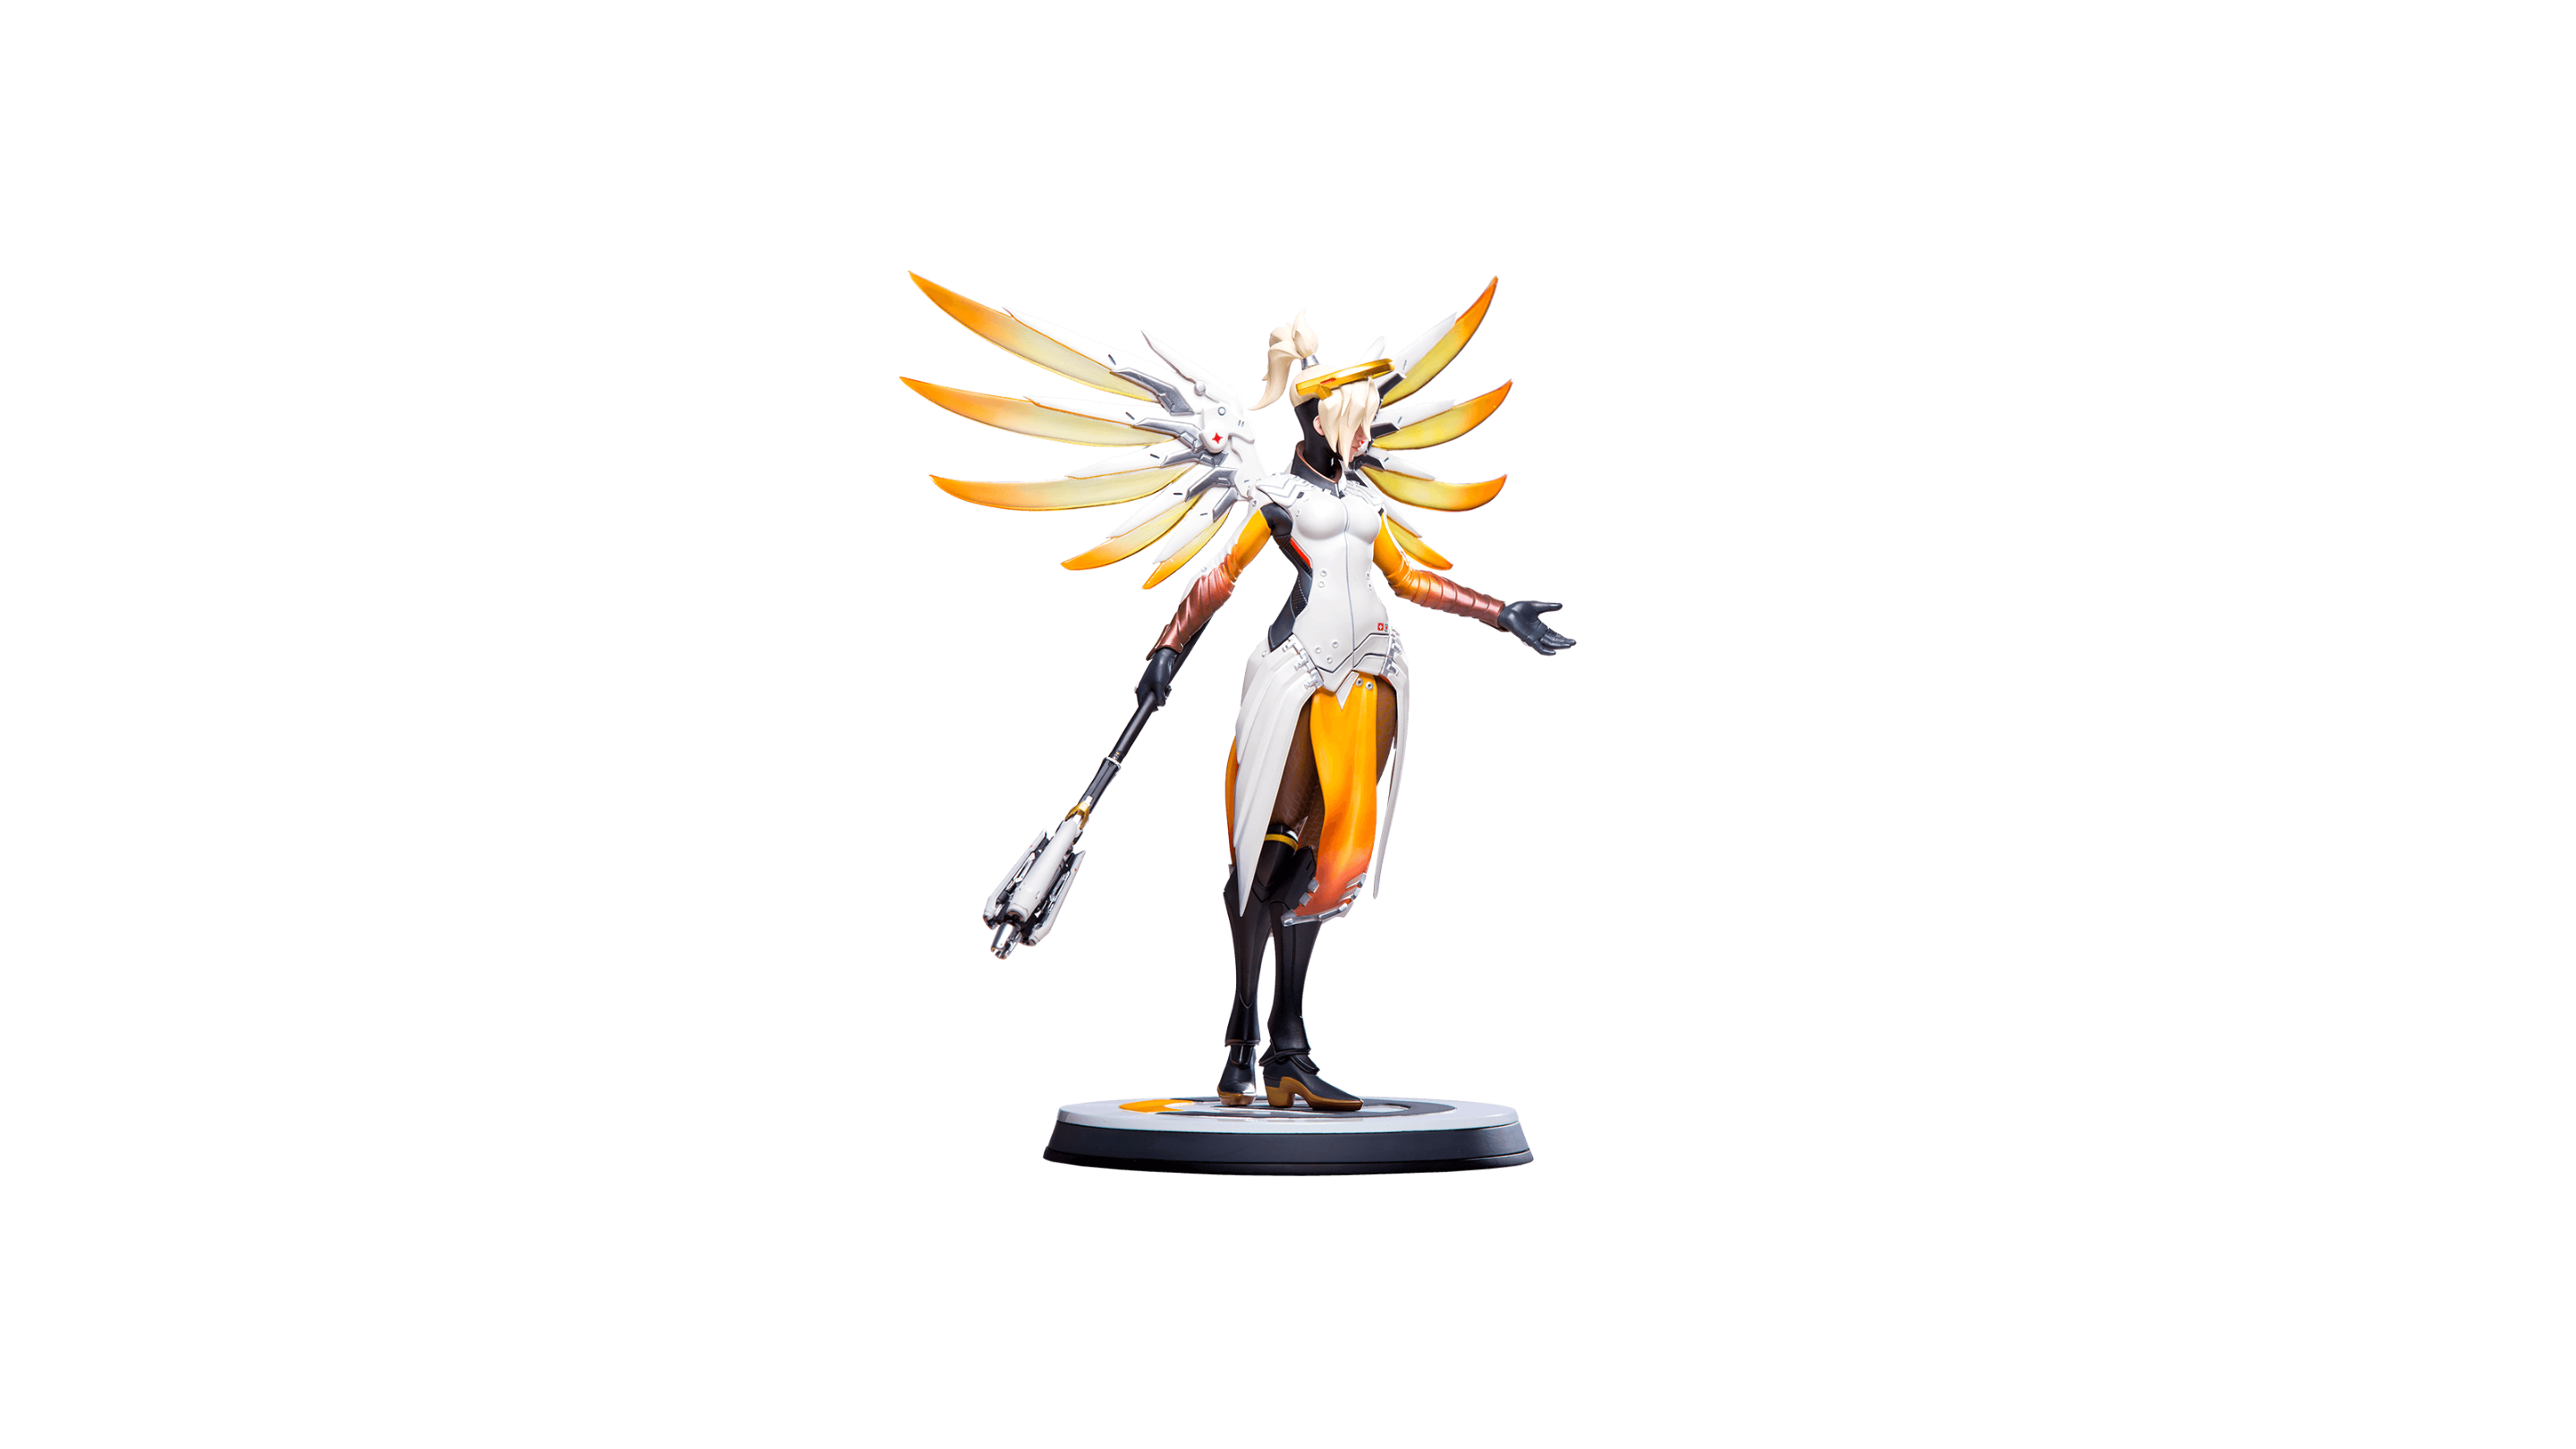 La figurine officielle de Ange (Overwatch)